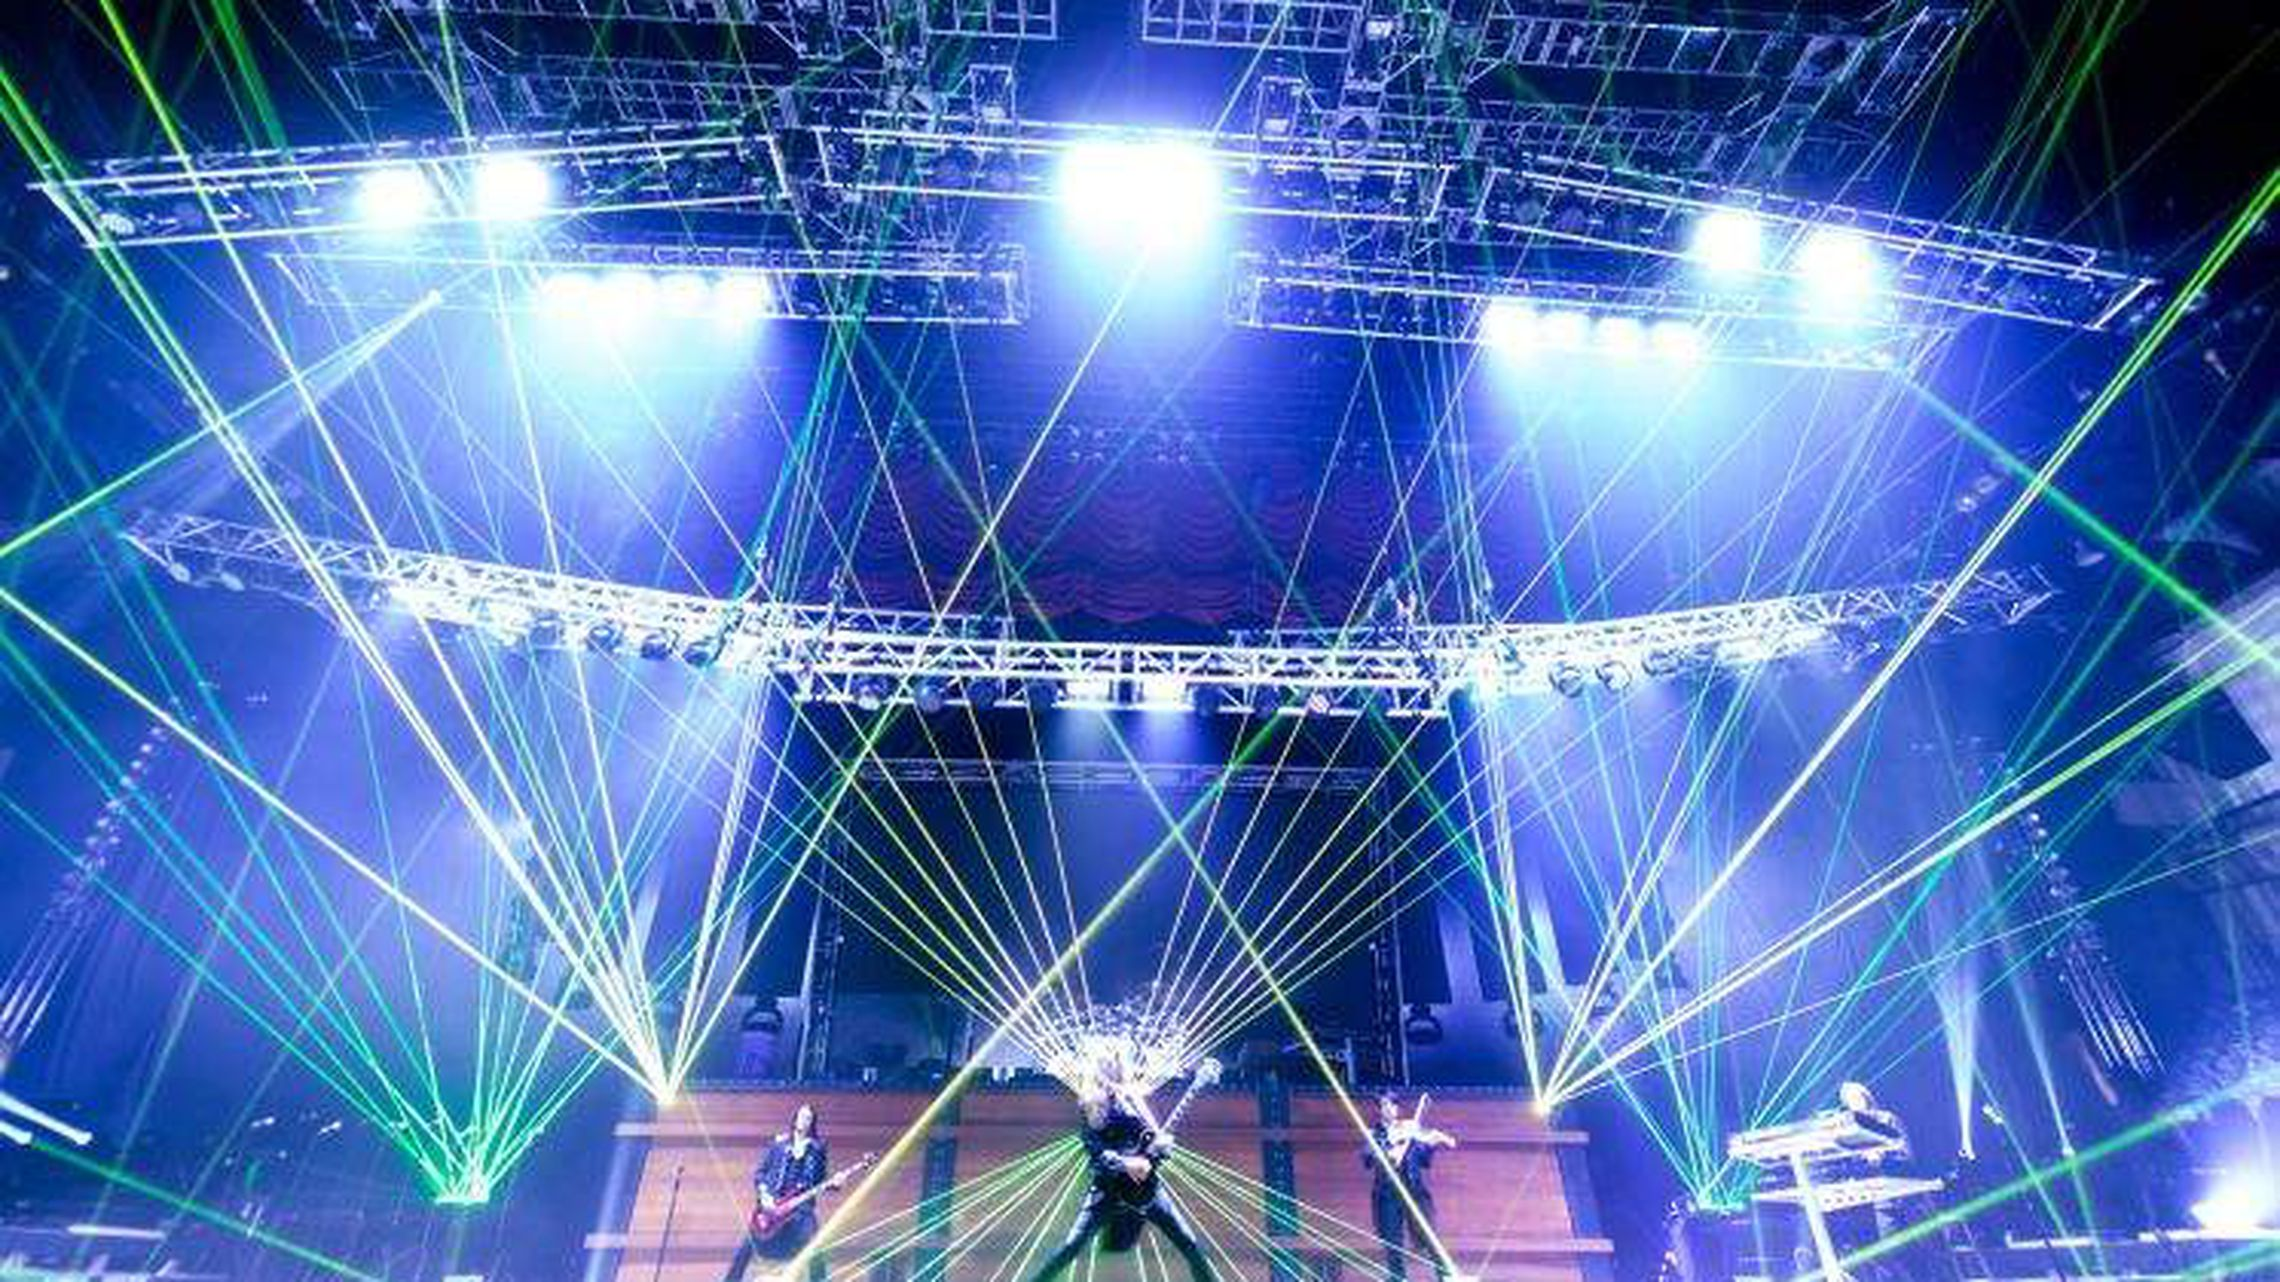 Christmas Orchestra 2020 Christmas tradition canceled: No Trans Siberian Orchestra tour in 2020